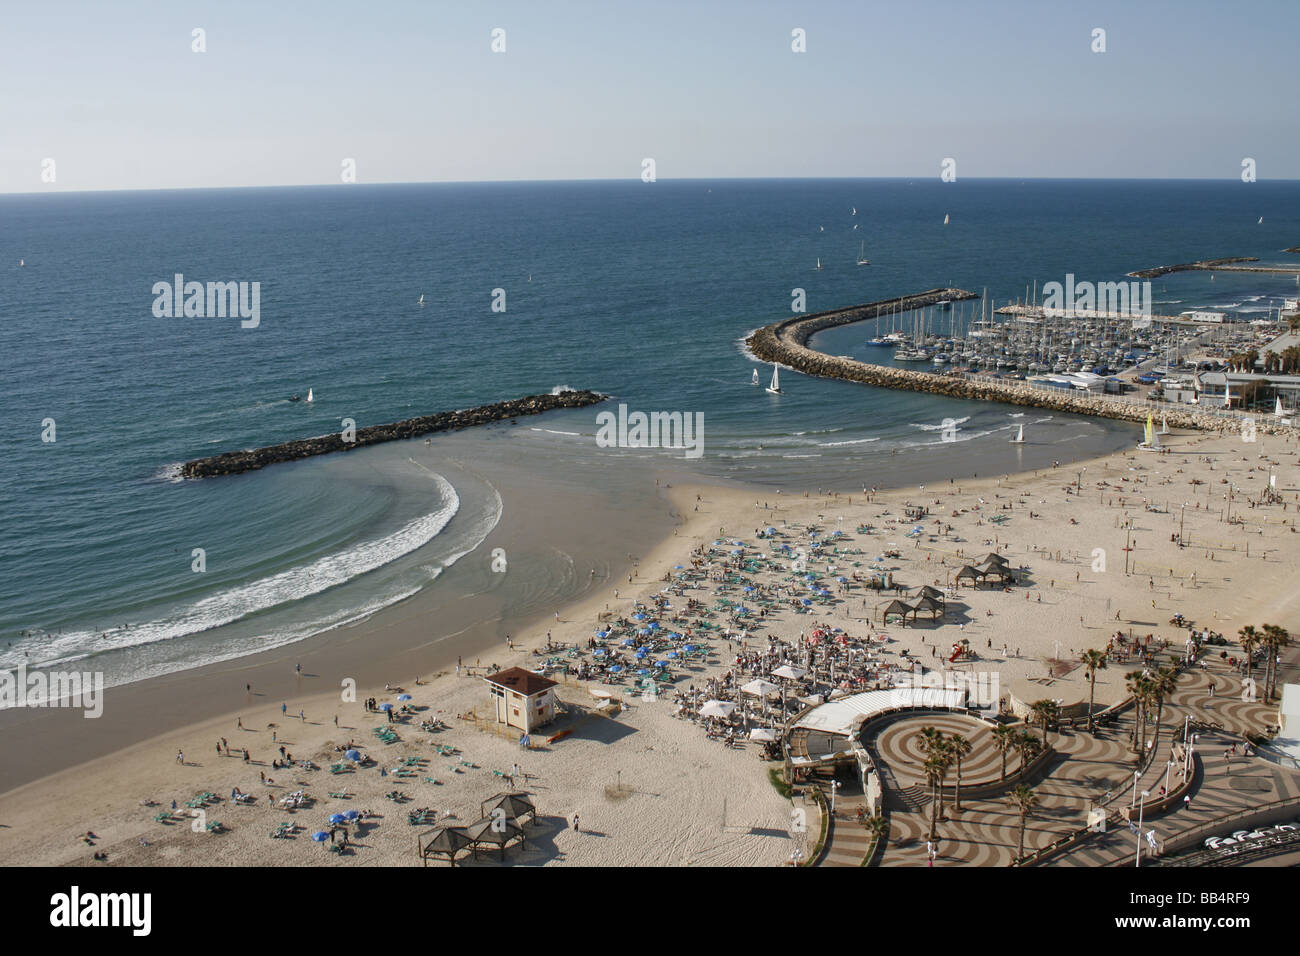 Beach of Tel Aviv, Israel - Stock Image